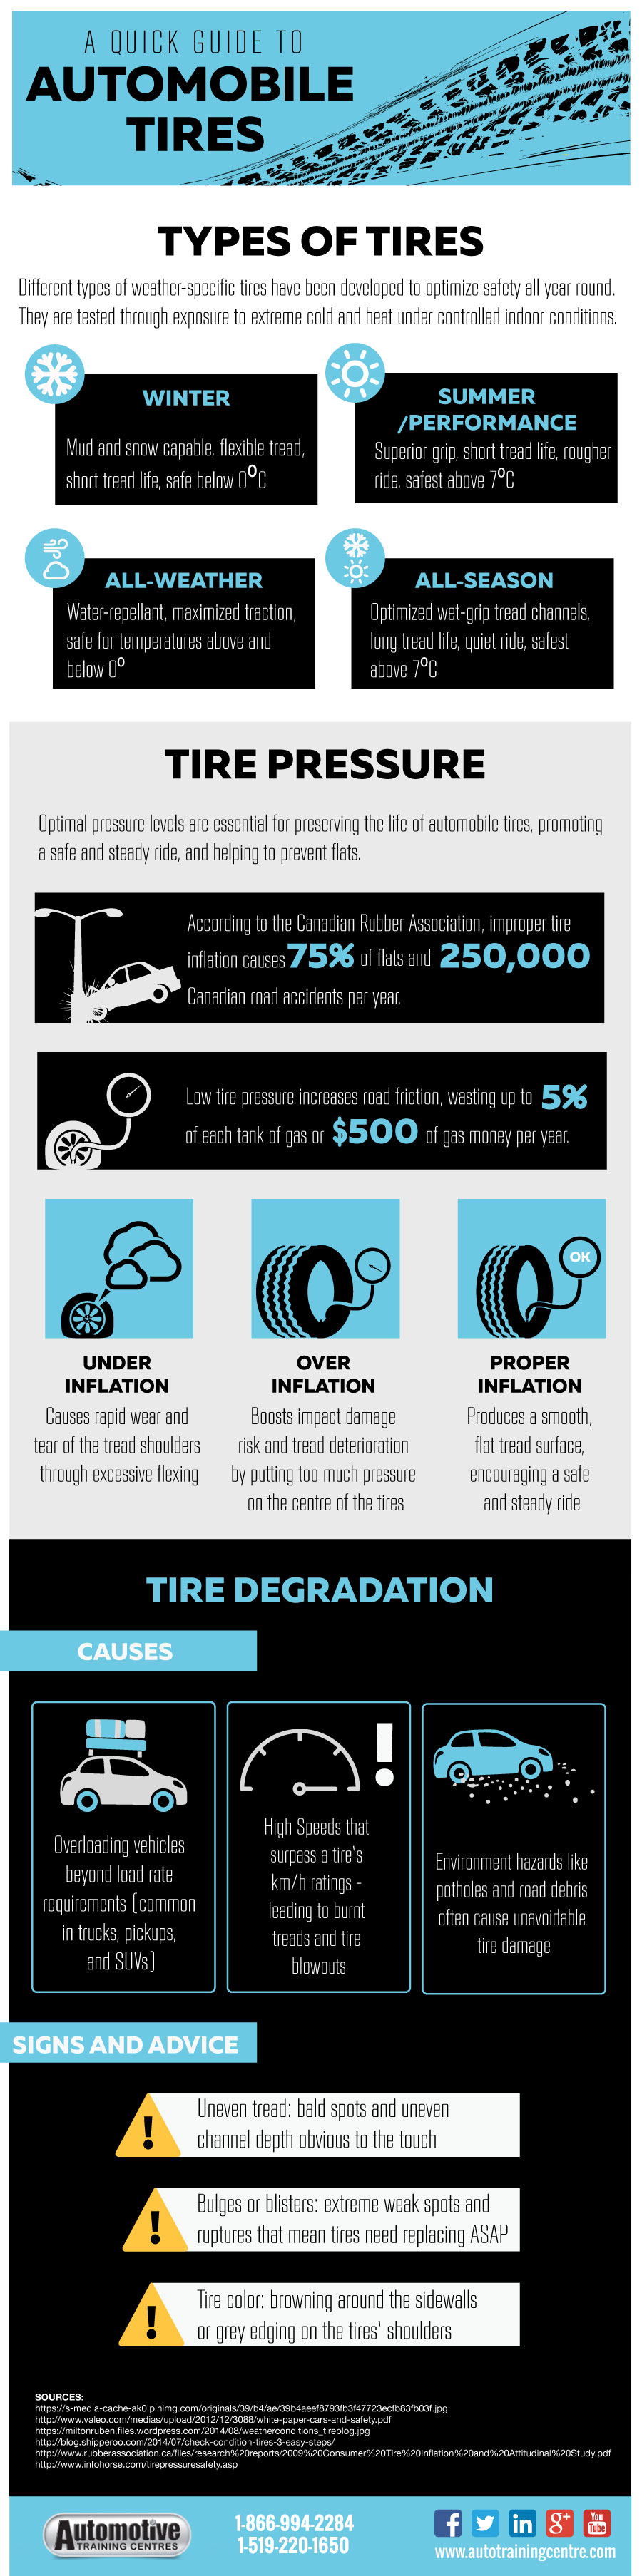 [Infographic] Quick-Guide to Automobile Tires